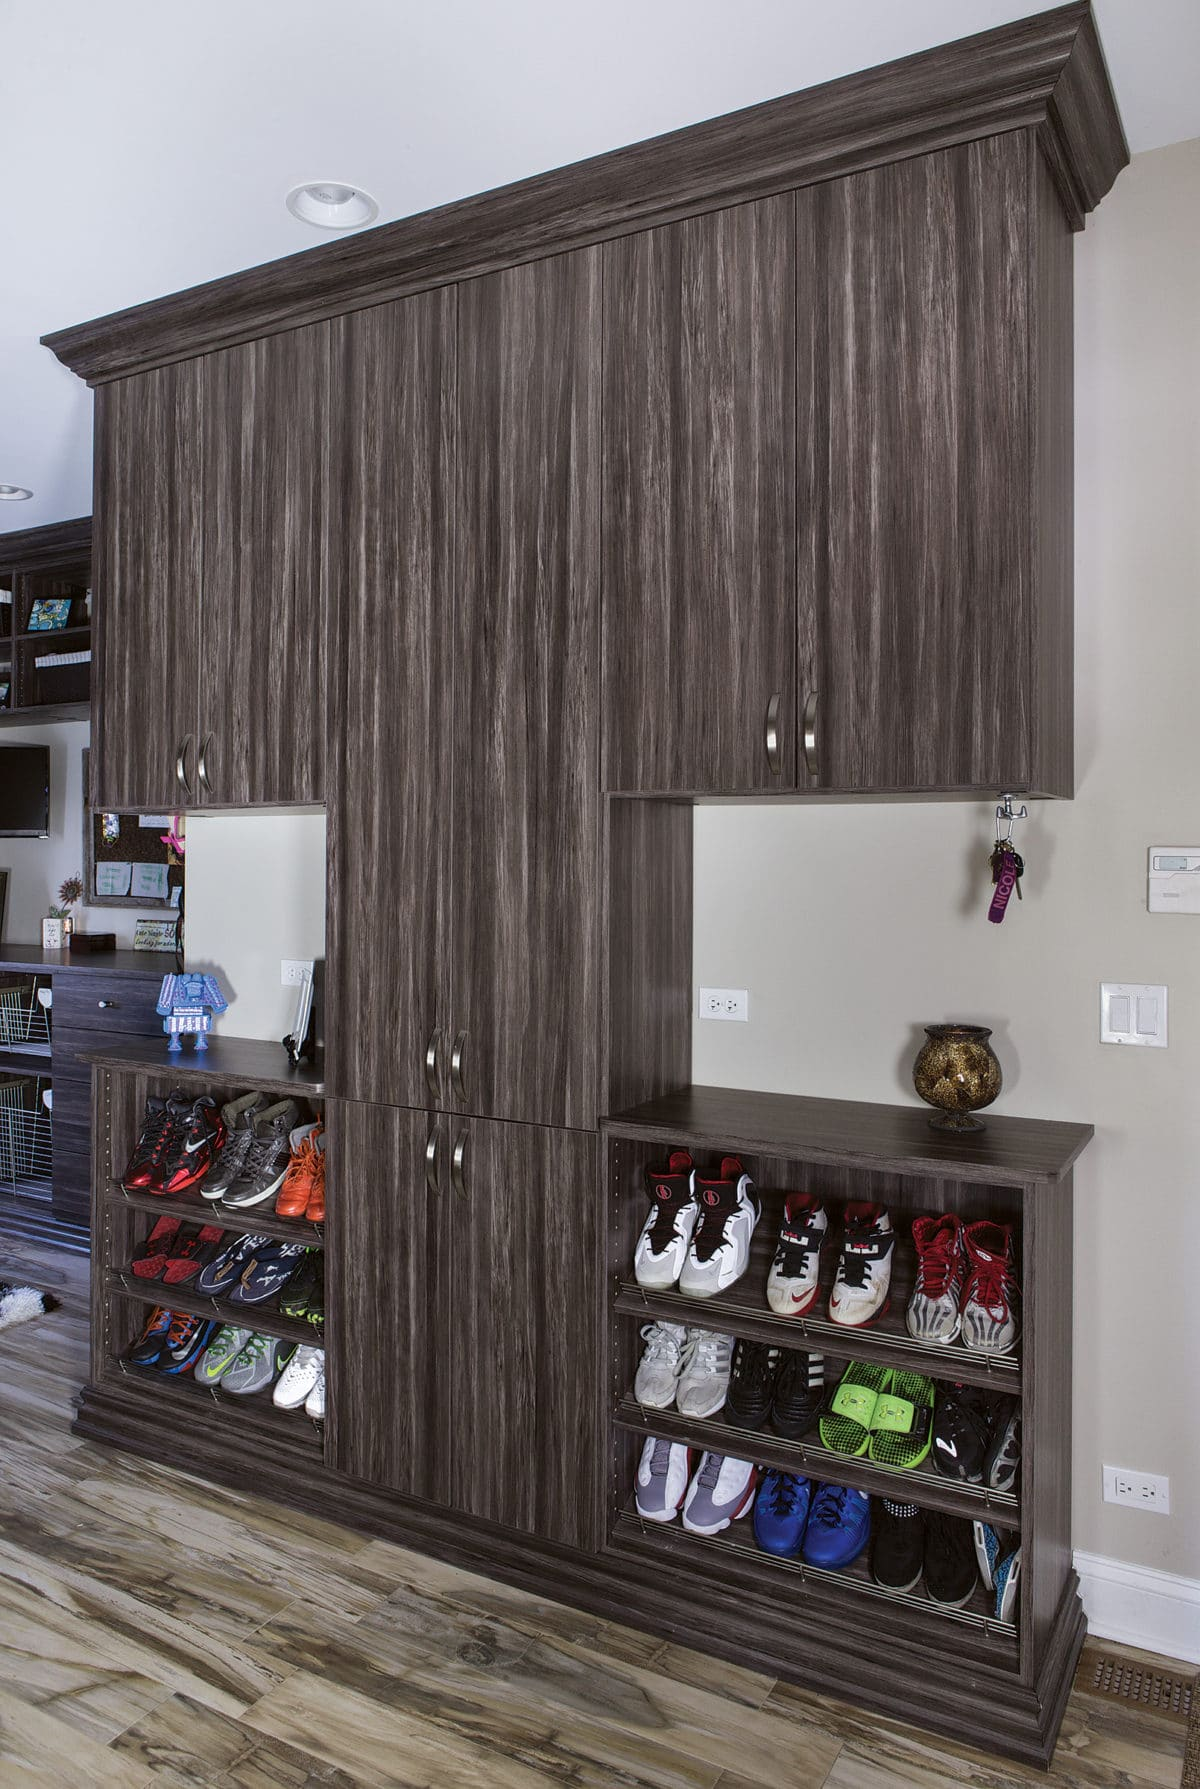 MUDROOM MERAPI LAMINATE CONTEMPO FRONTS AND SLANTED SHOE SHELVES